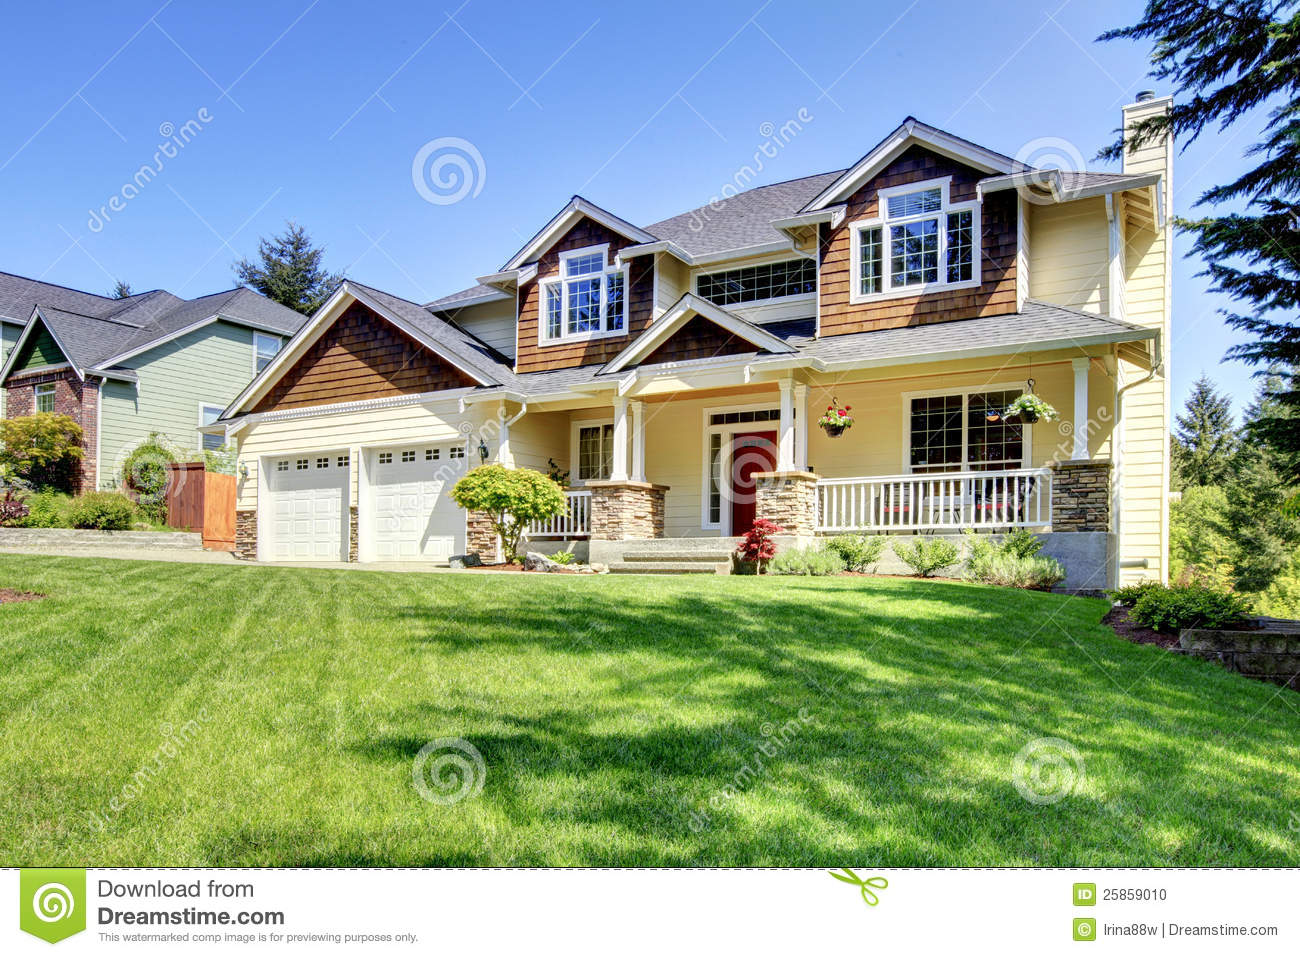 Large american beautiful house with red door stock photo for Big houses in america